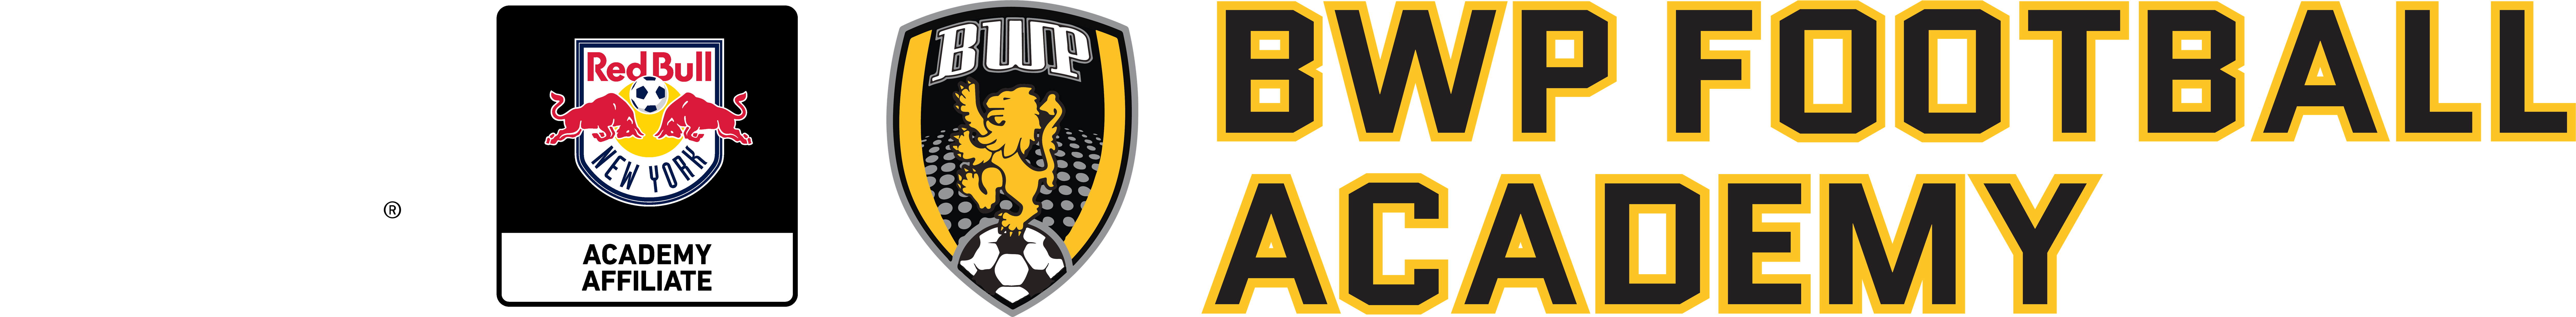 Compressed White BWP Football Academy LogoFinal 2021 (1)